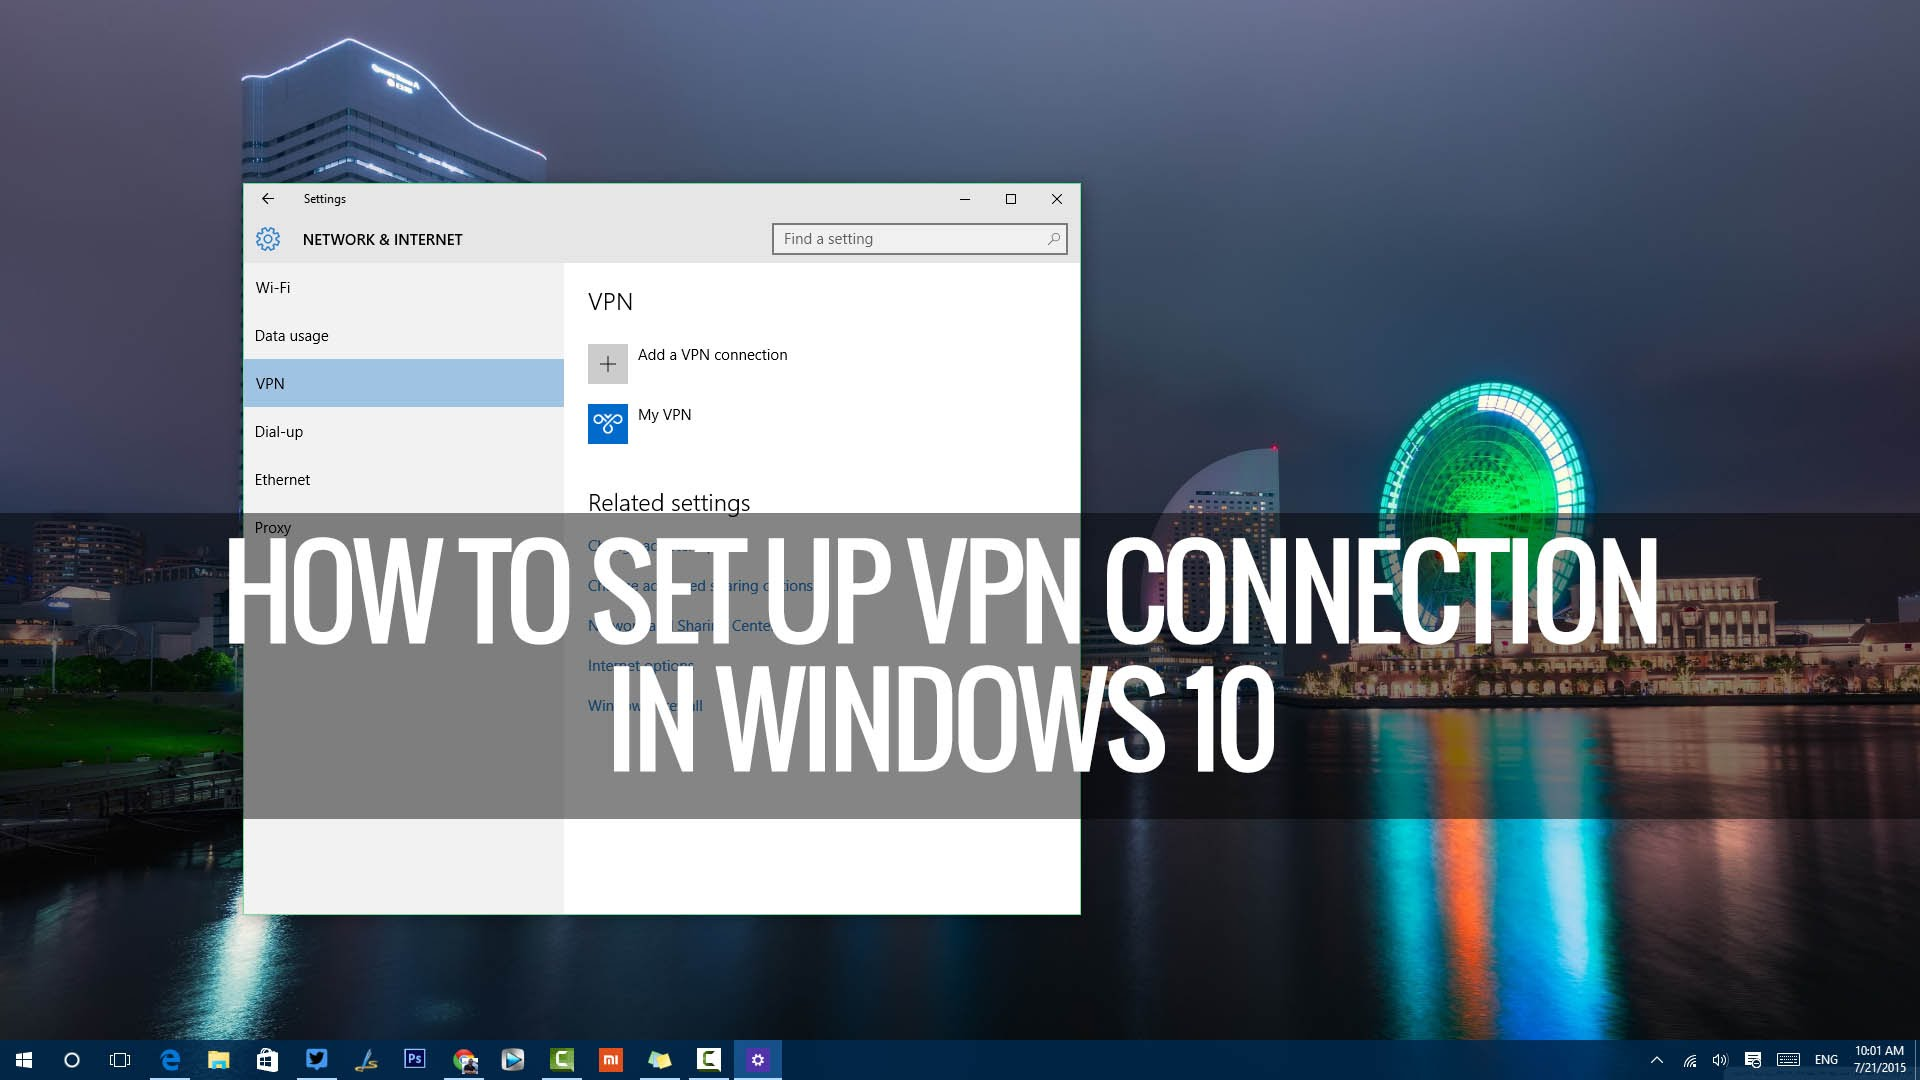 How To Set Up A VPN In Windows 10 - Here's The Ultimate Guide